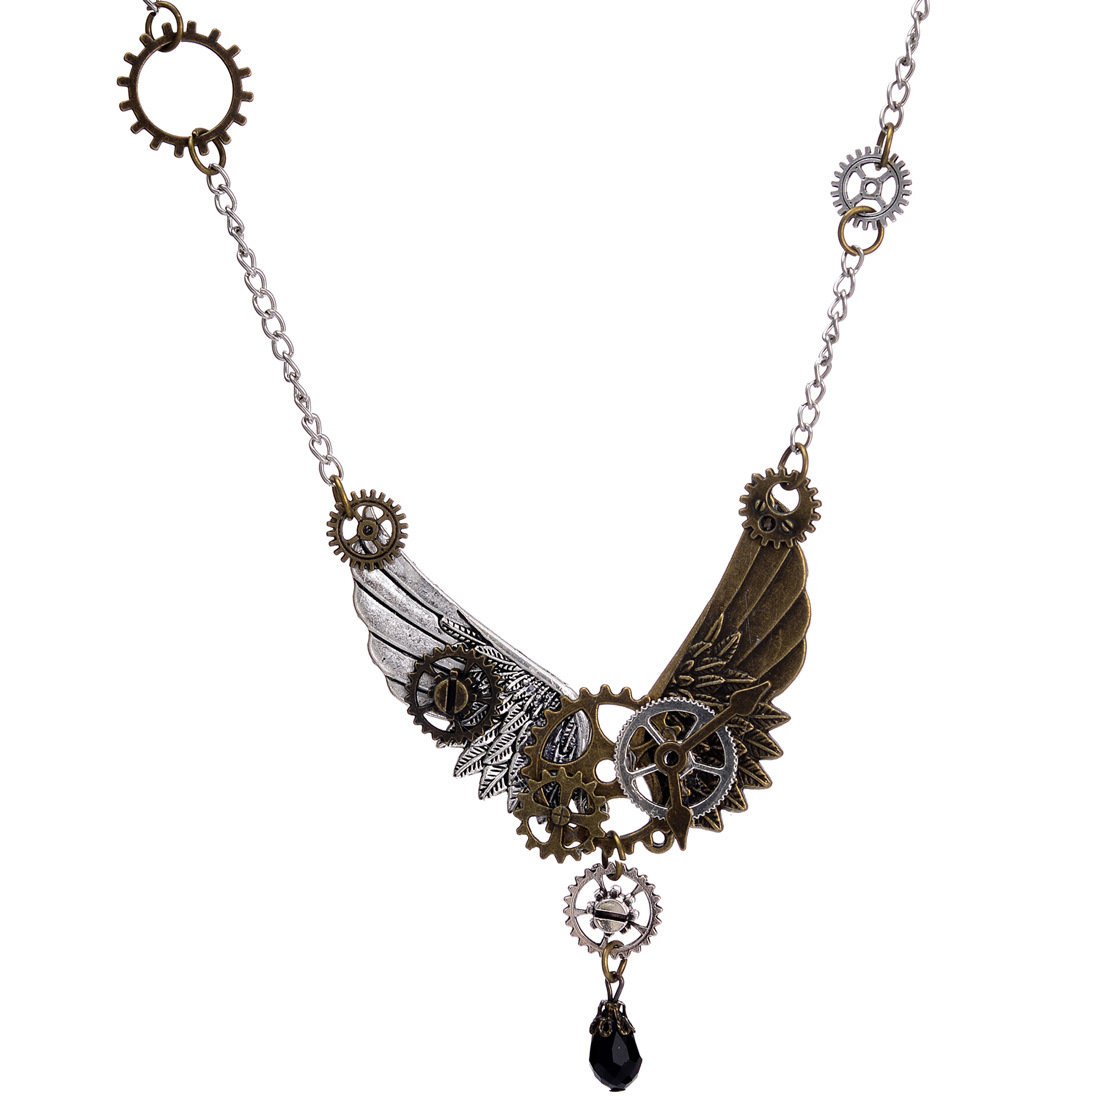 Vintage Unisex Jewelry Steampunk Wings and Gear Necklace Crystal Drop Charm Necklace